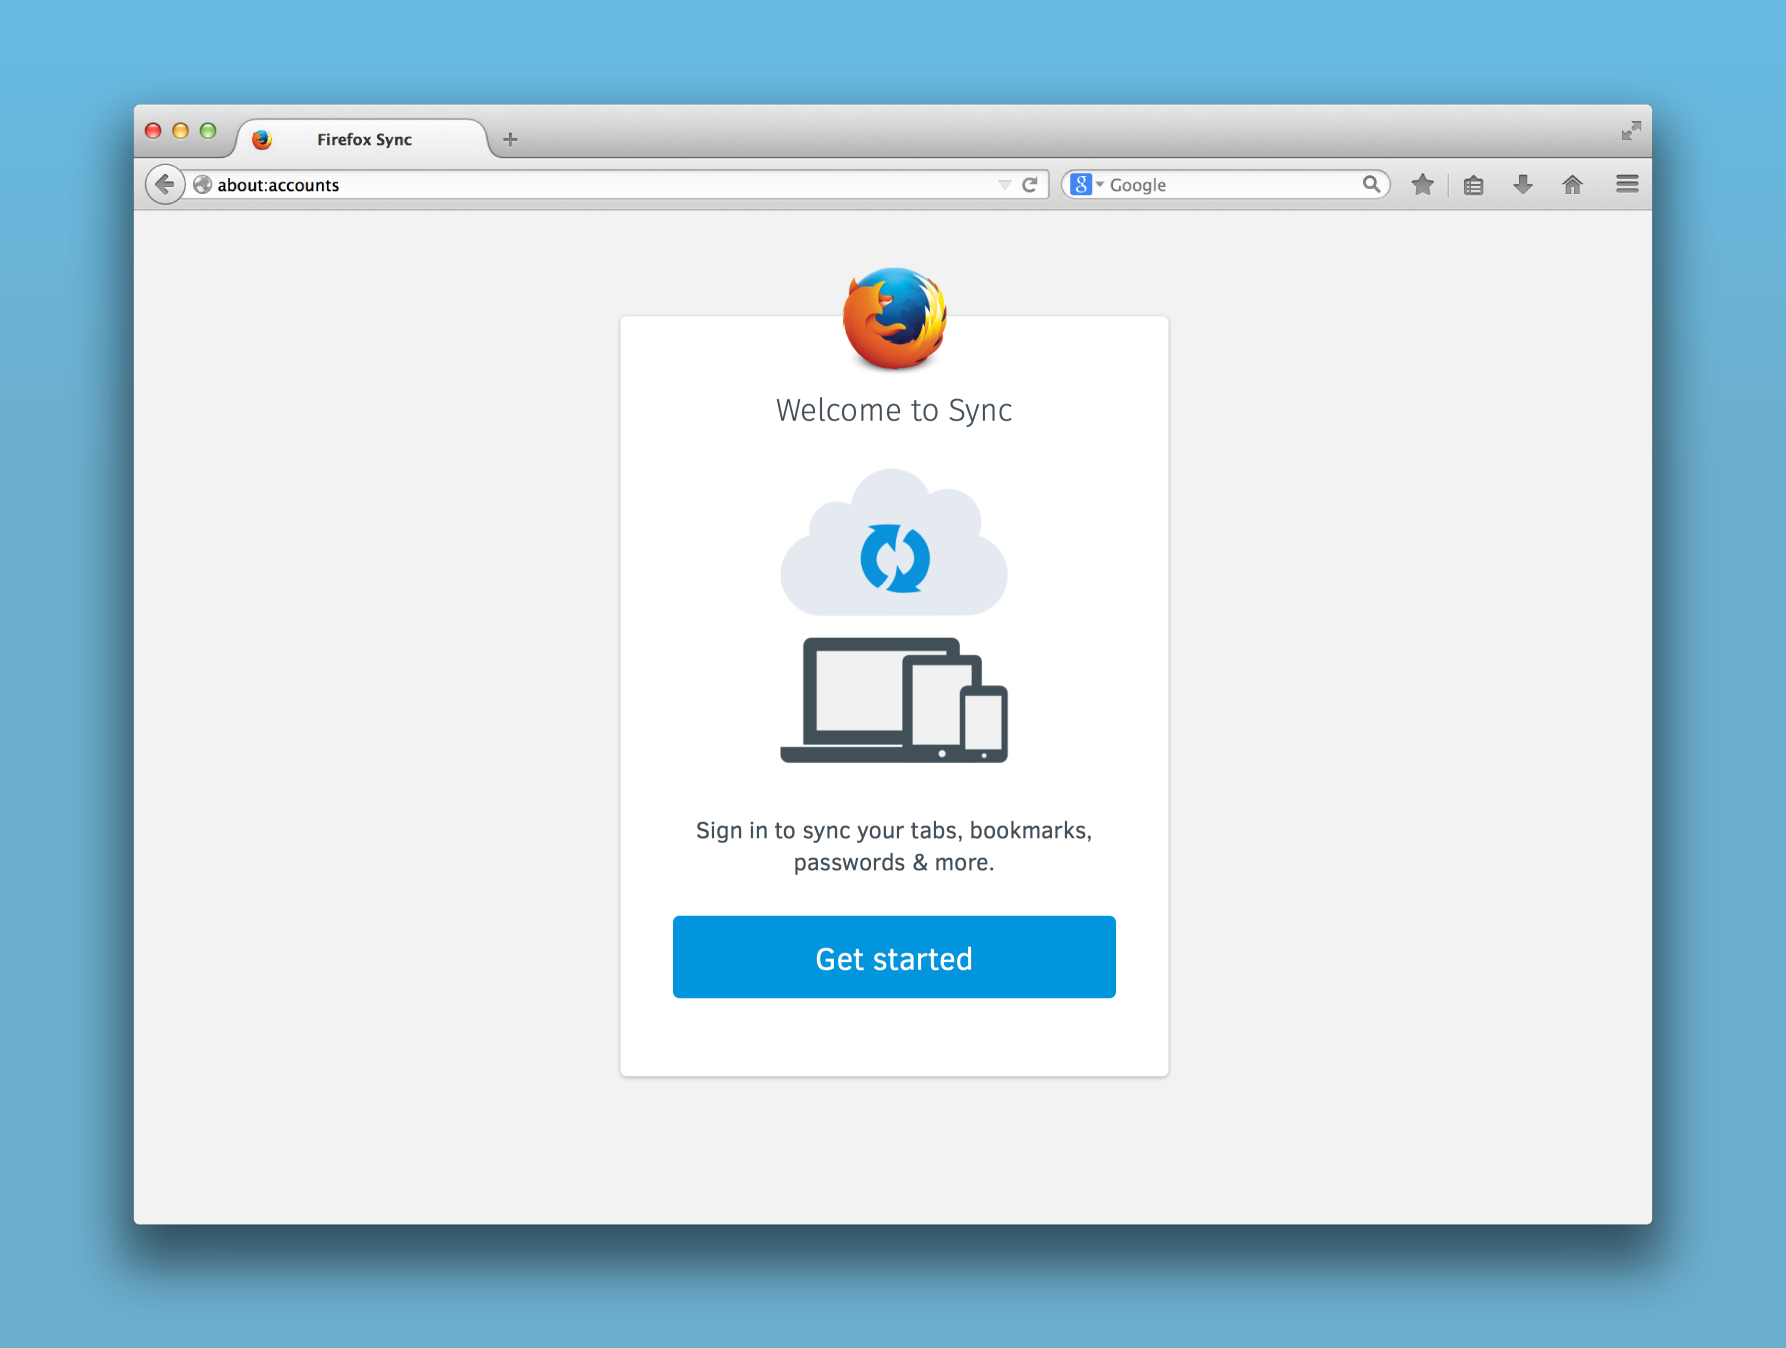 Test the New Firefox Sync and Customize the New UI in